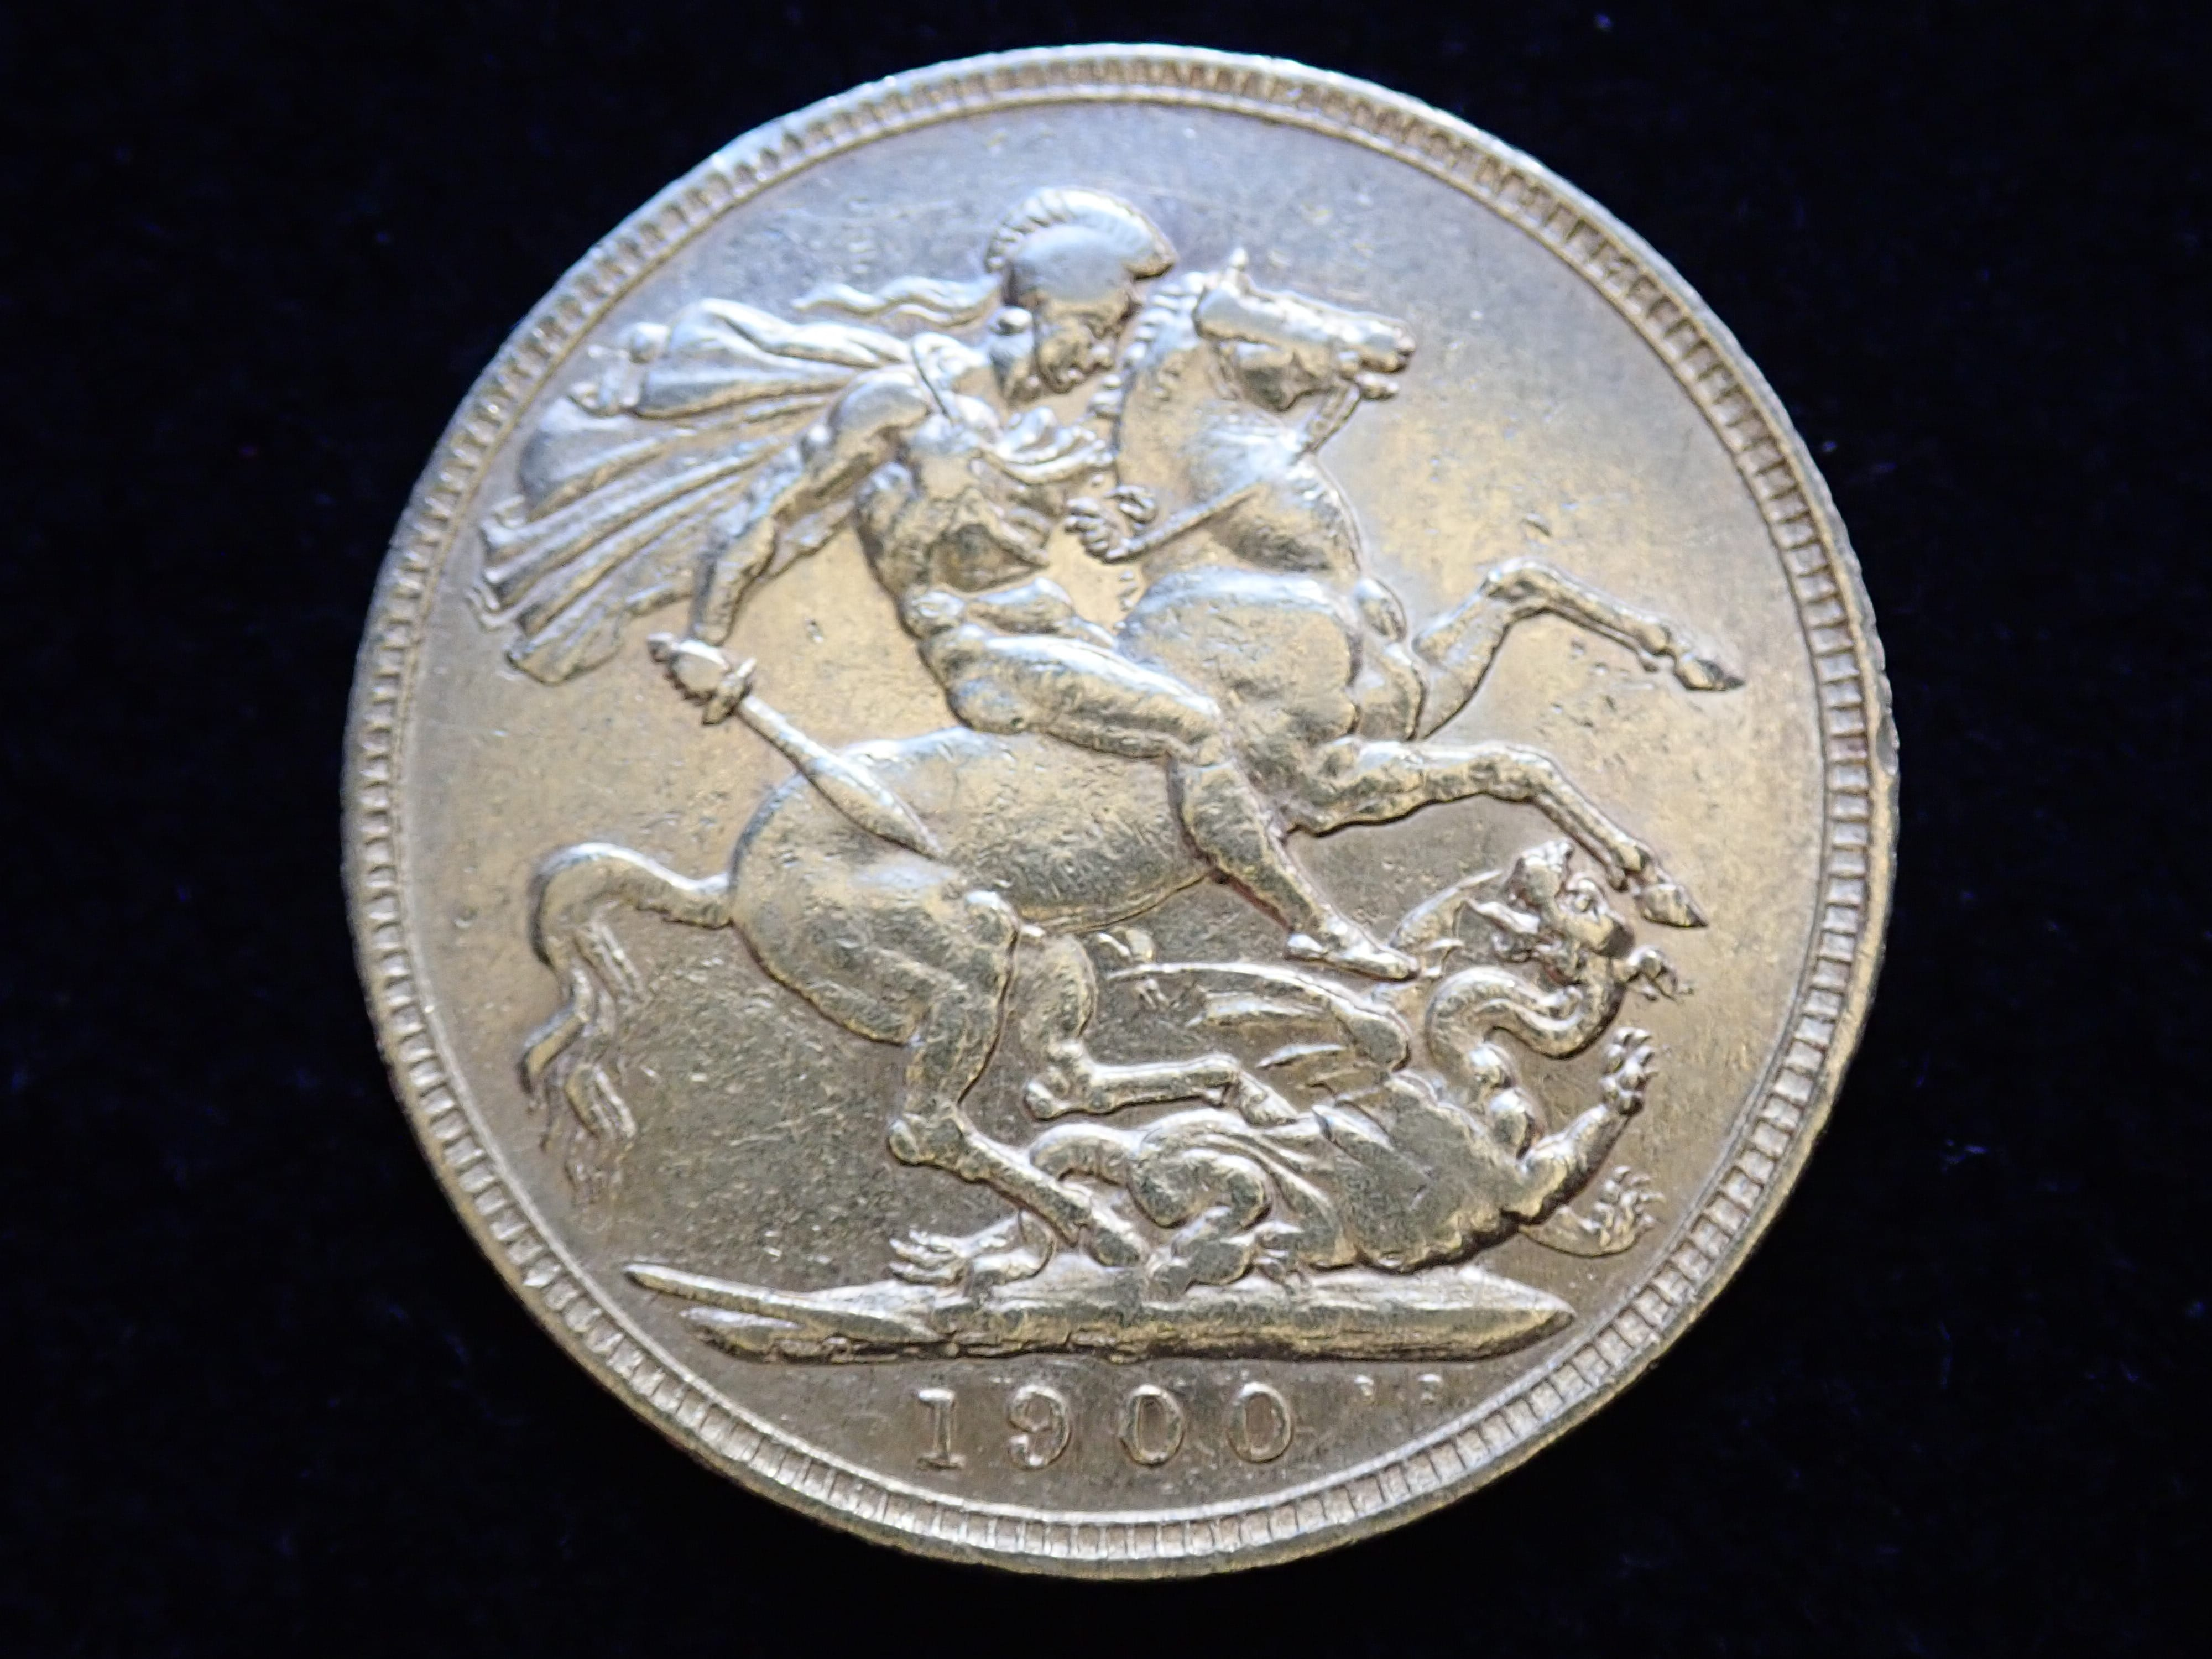 AA000802 - 1900 Gold Full Sovereign Coin - Queen Victoria Old Head - London Mint #a355